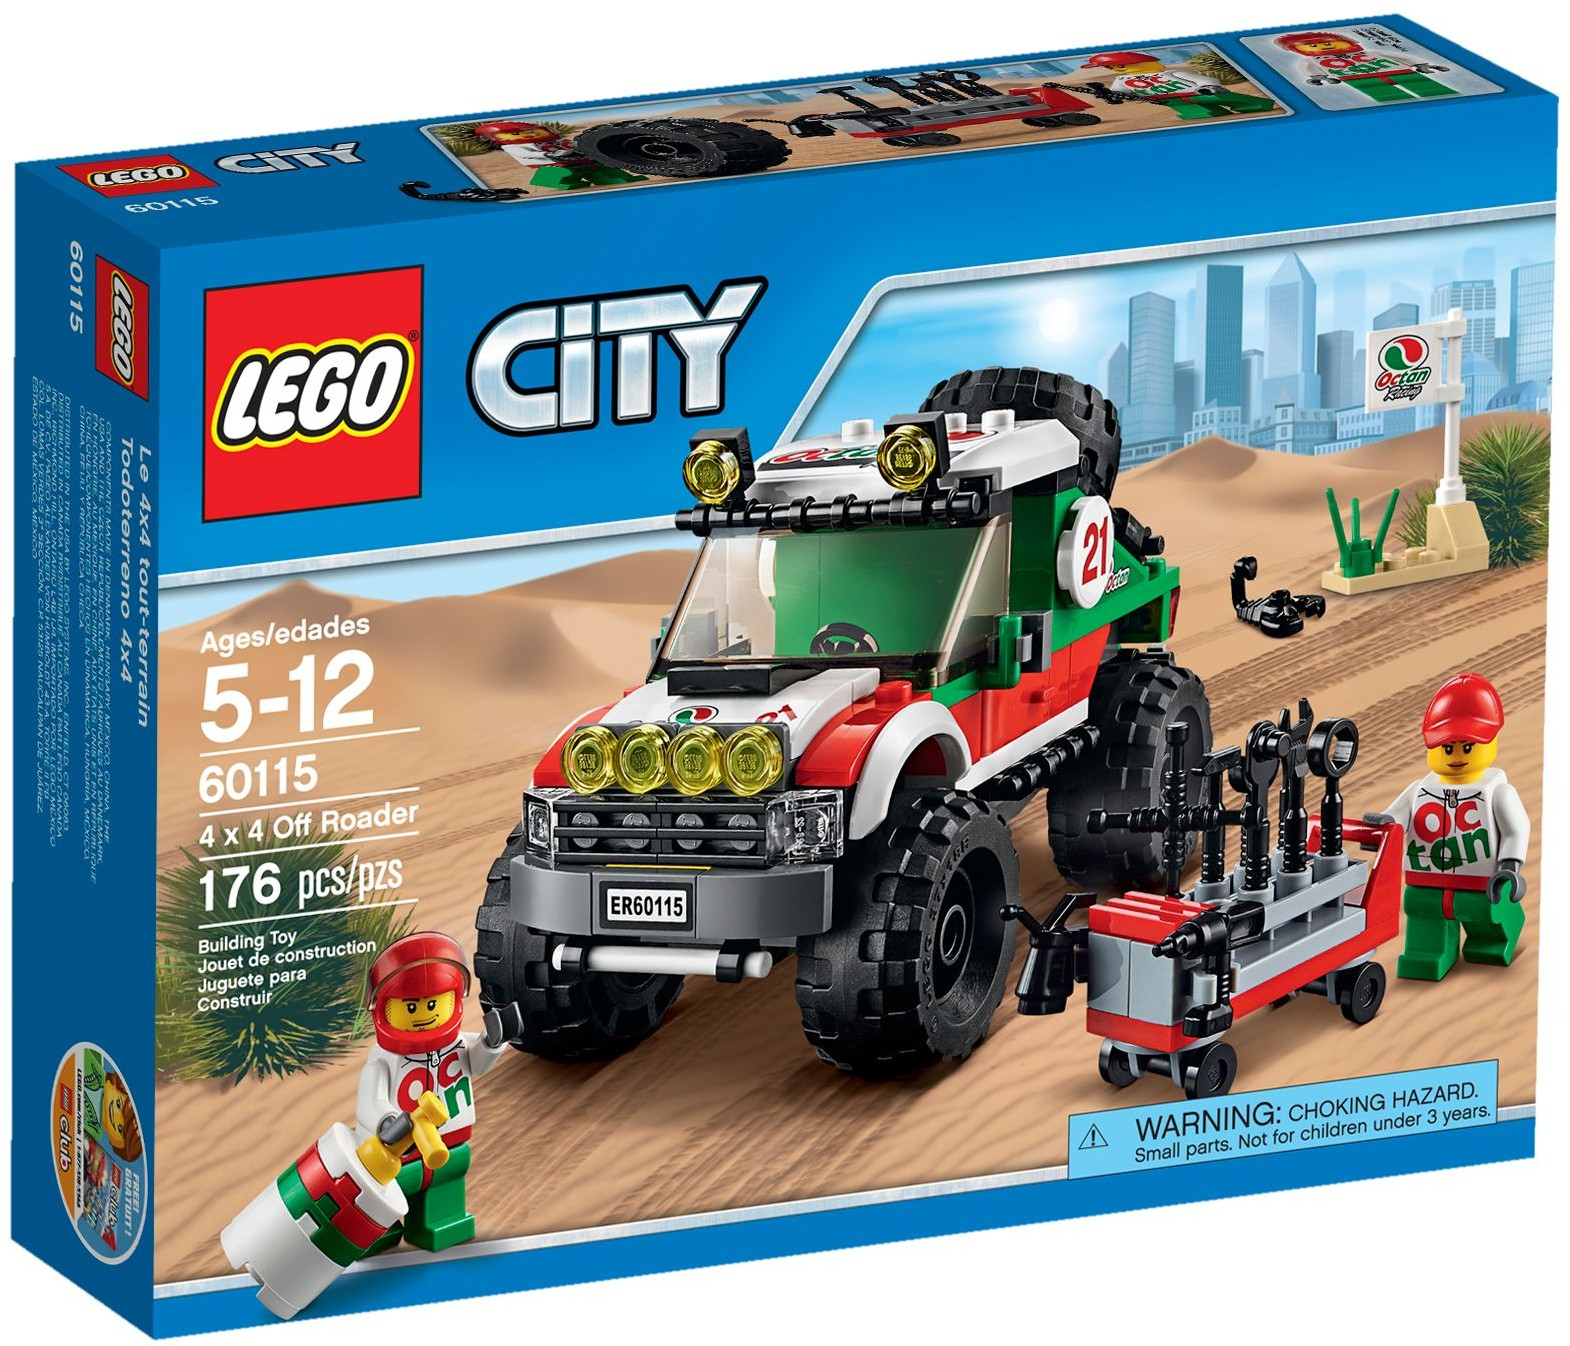 lego city 60115 pas cher le 4x4 tout terrain. Black Bedroom Furniture Sets. Home Design Ideas